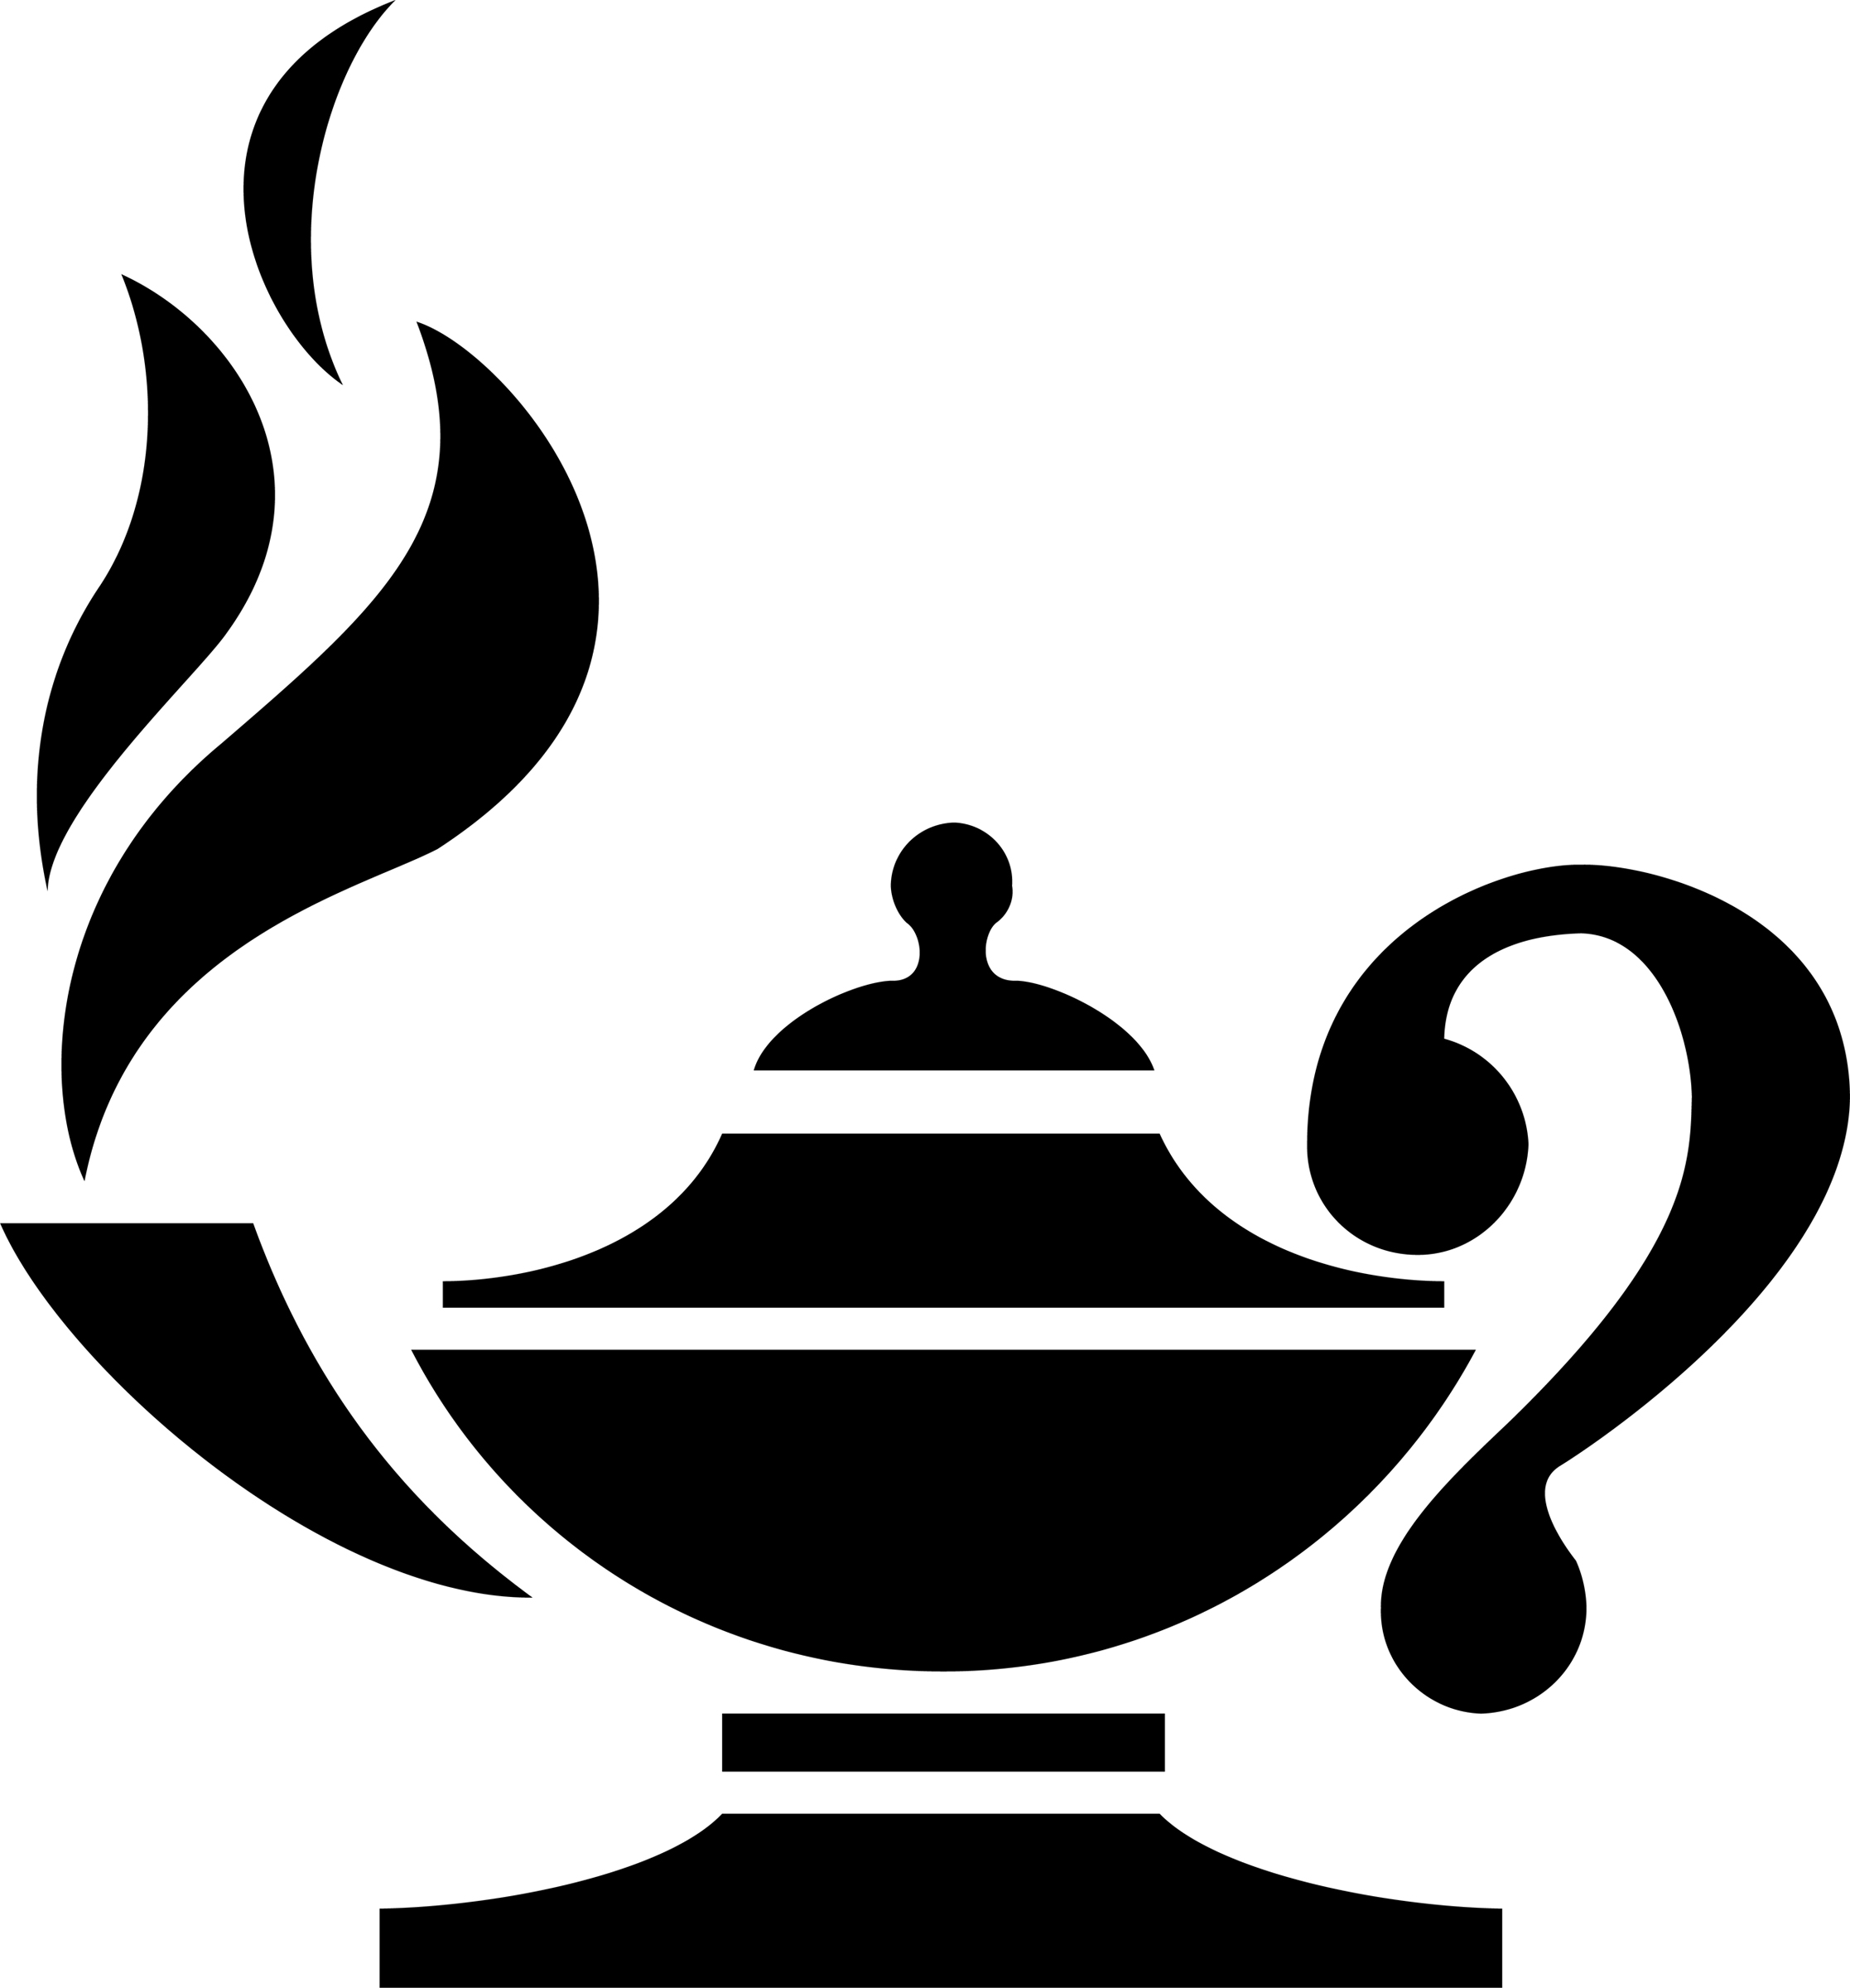 Knowledge lamp clipart.